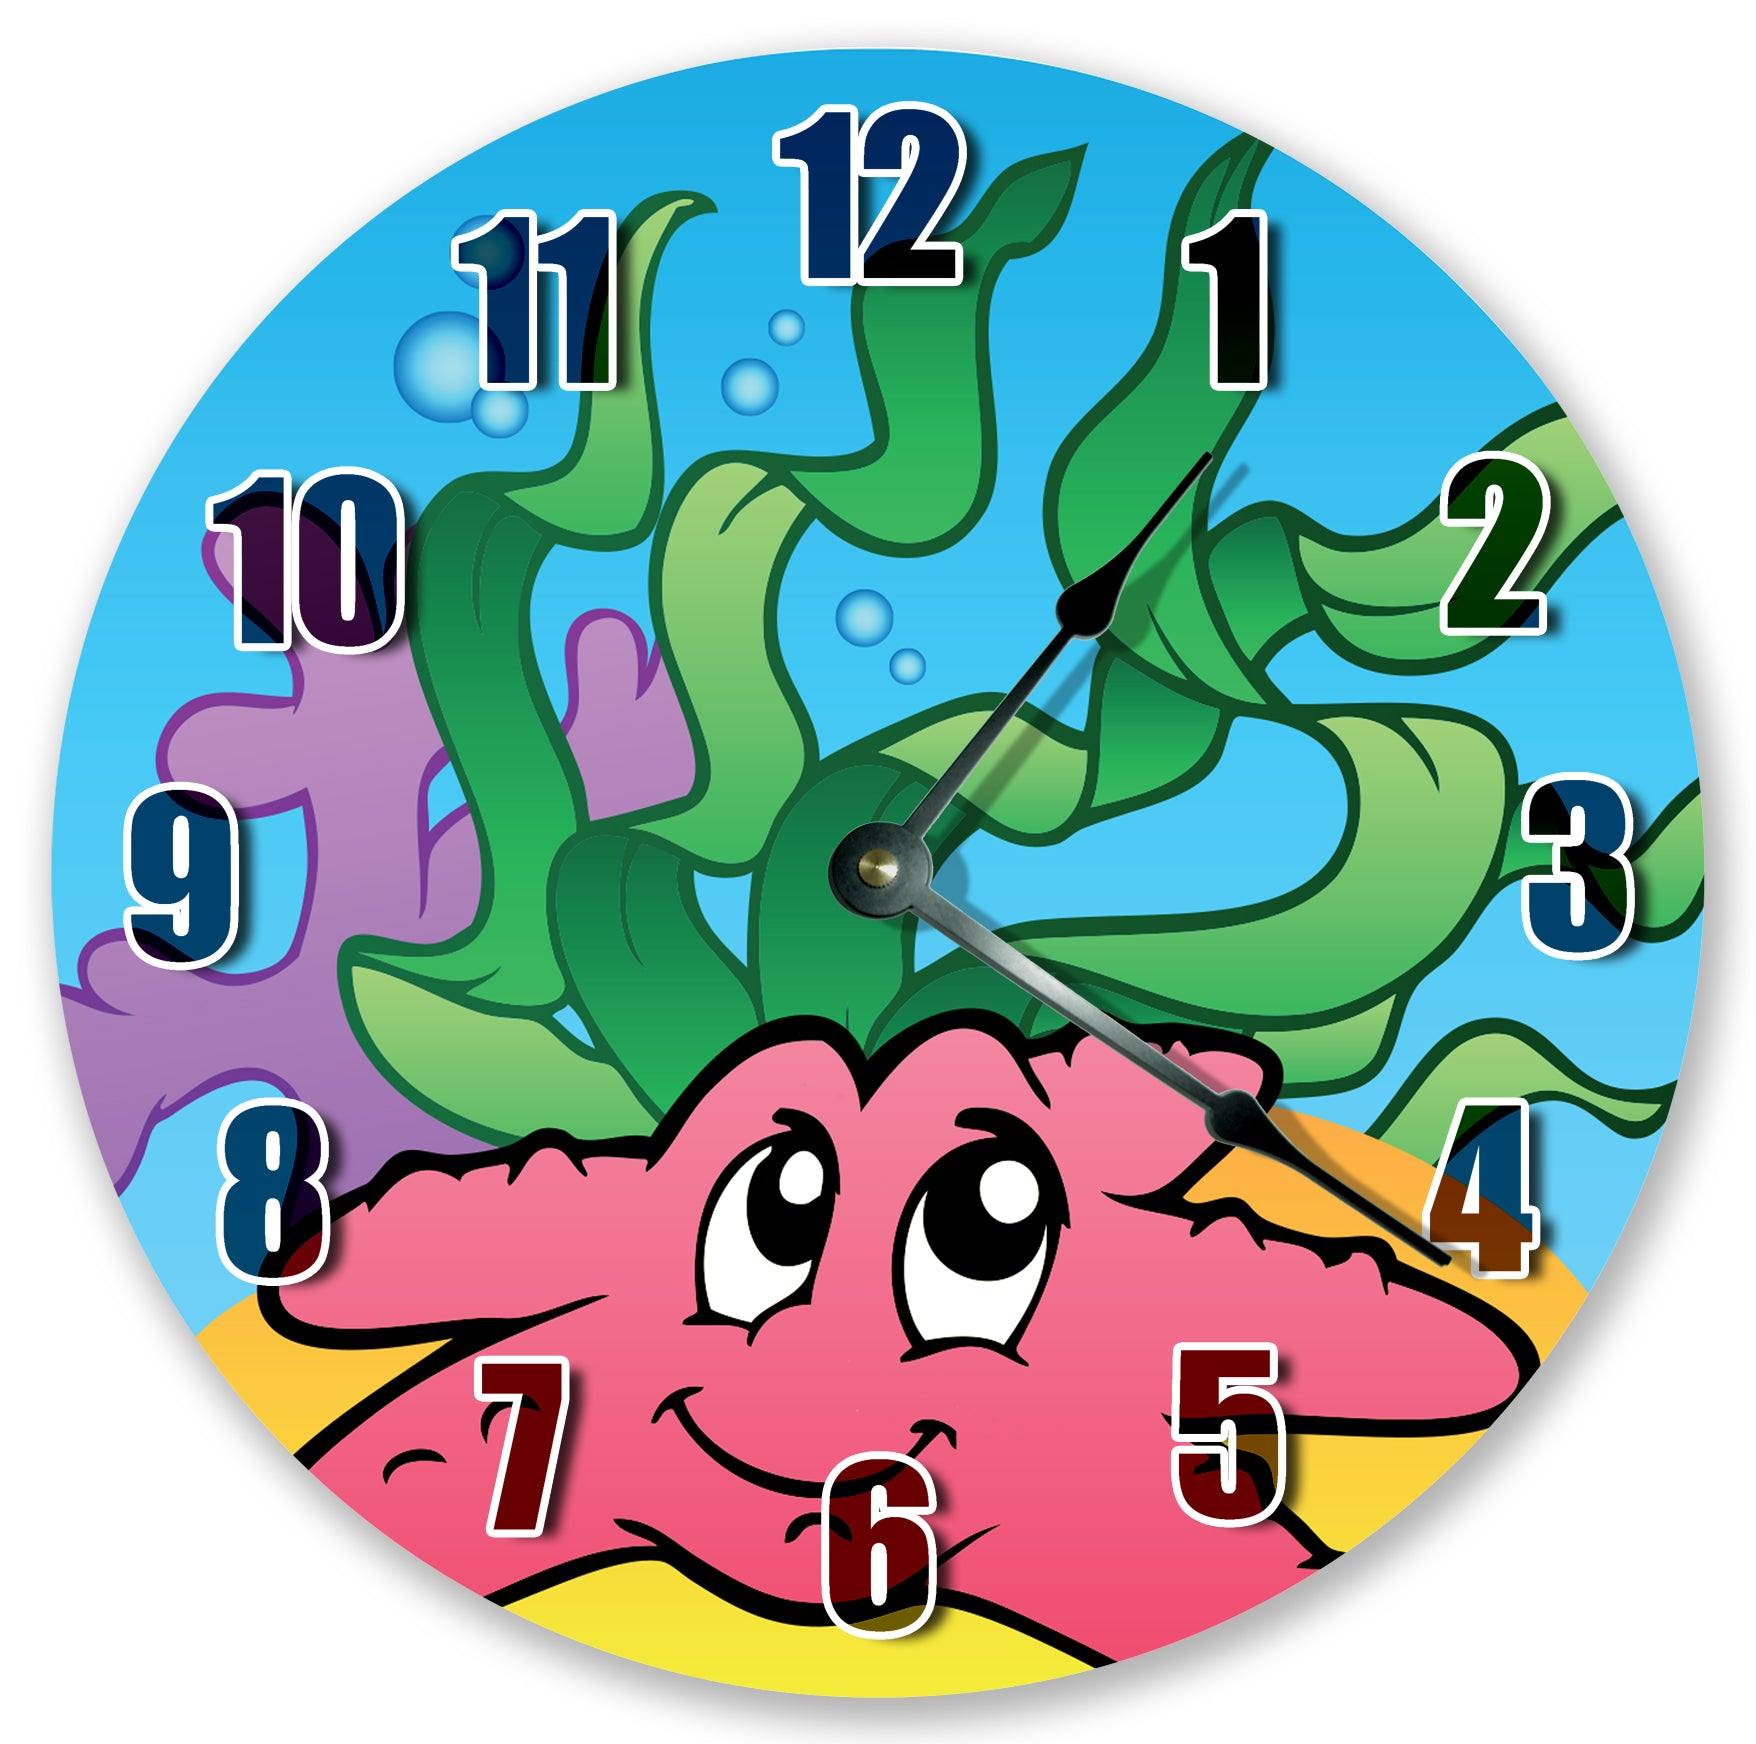 Cute Pink Starfish Ocean Sea Creatures Hanging Wall Clock